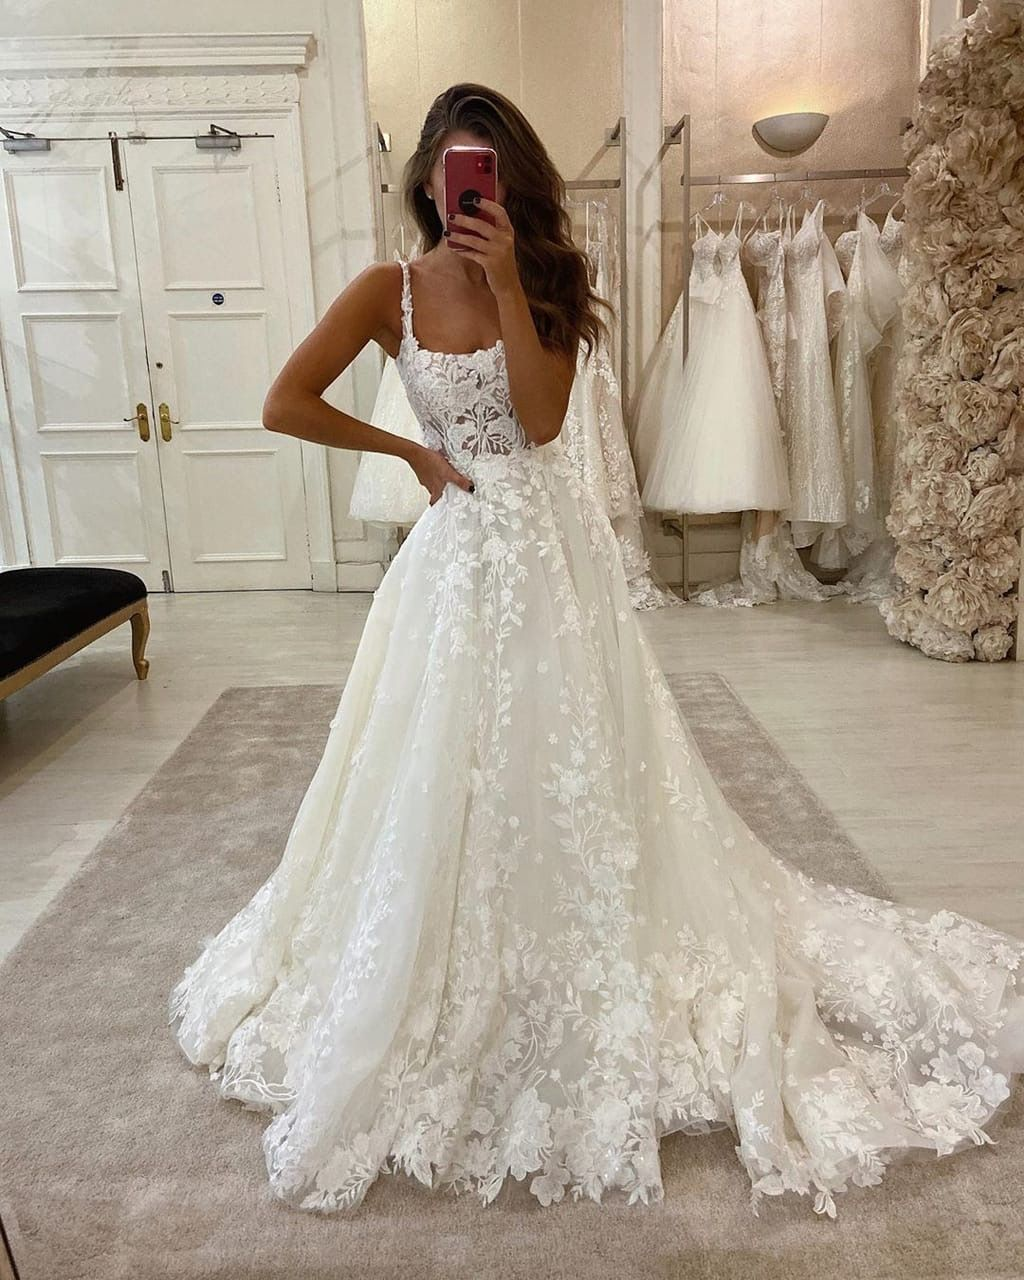 Pin By Jasmine Davis On Style Inspo In 2020 Wedding Dresses Wedding Dresses Lace Ball Gowns Wedding